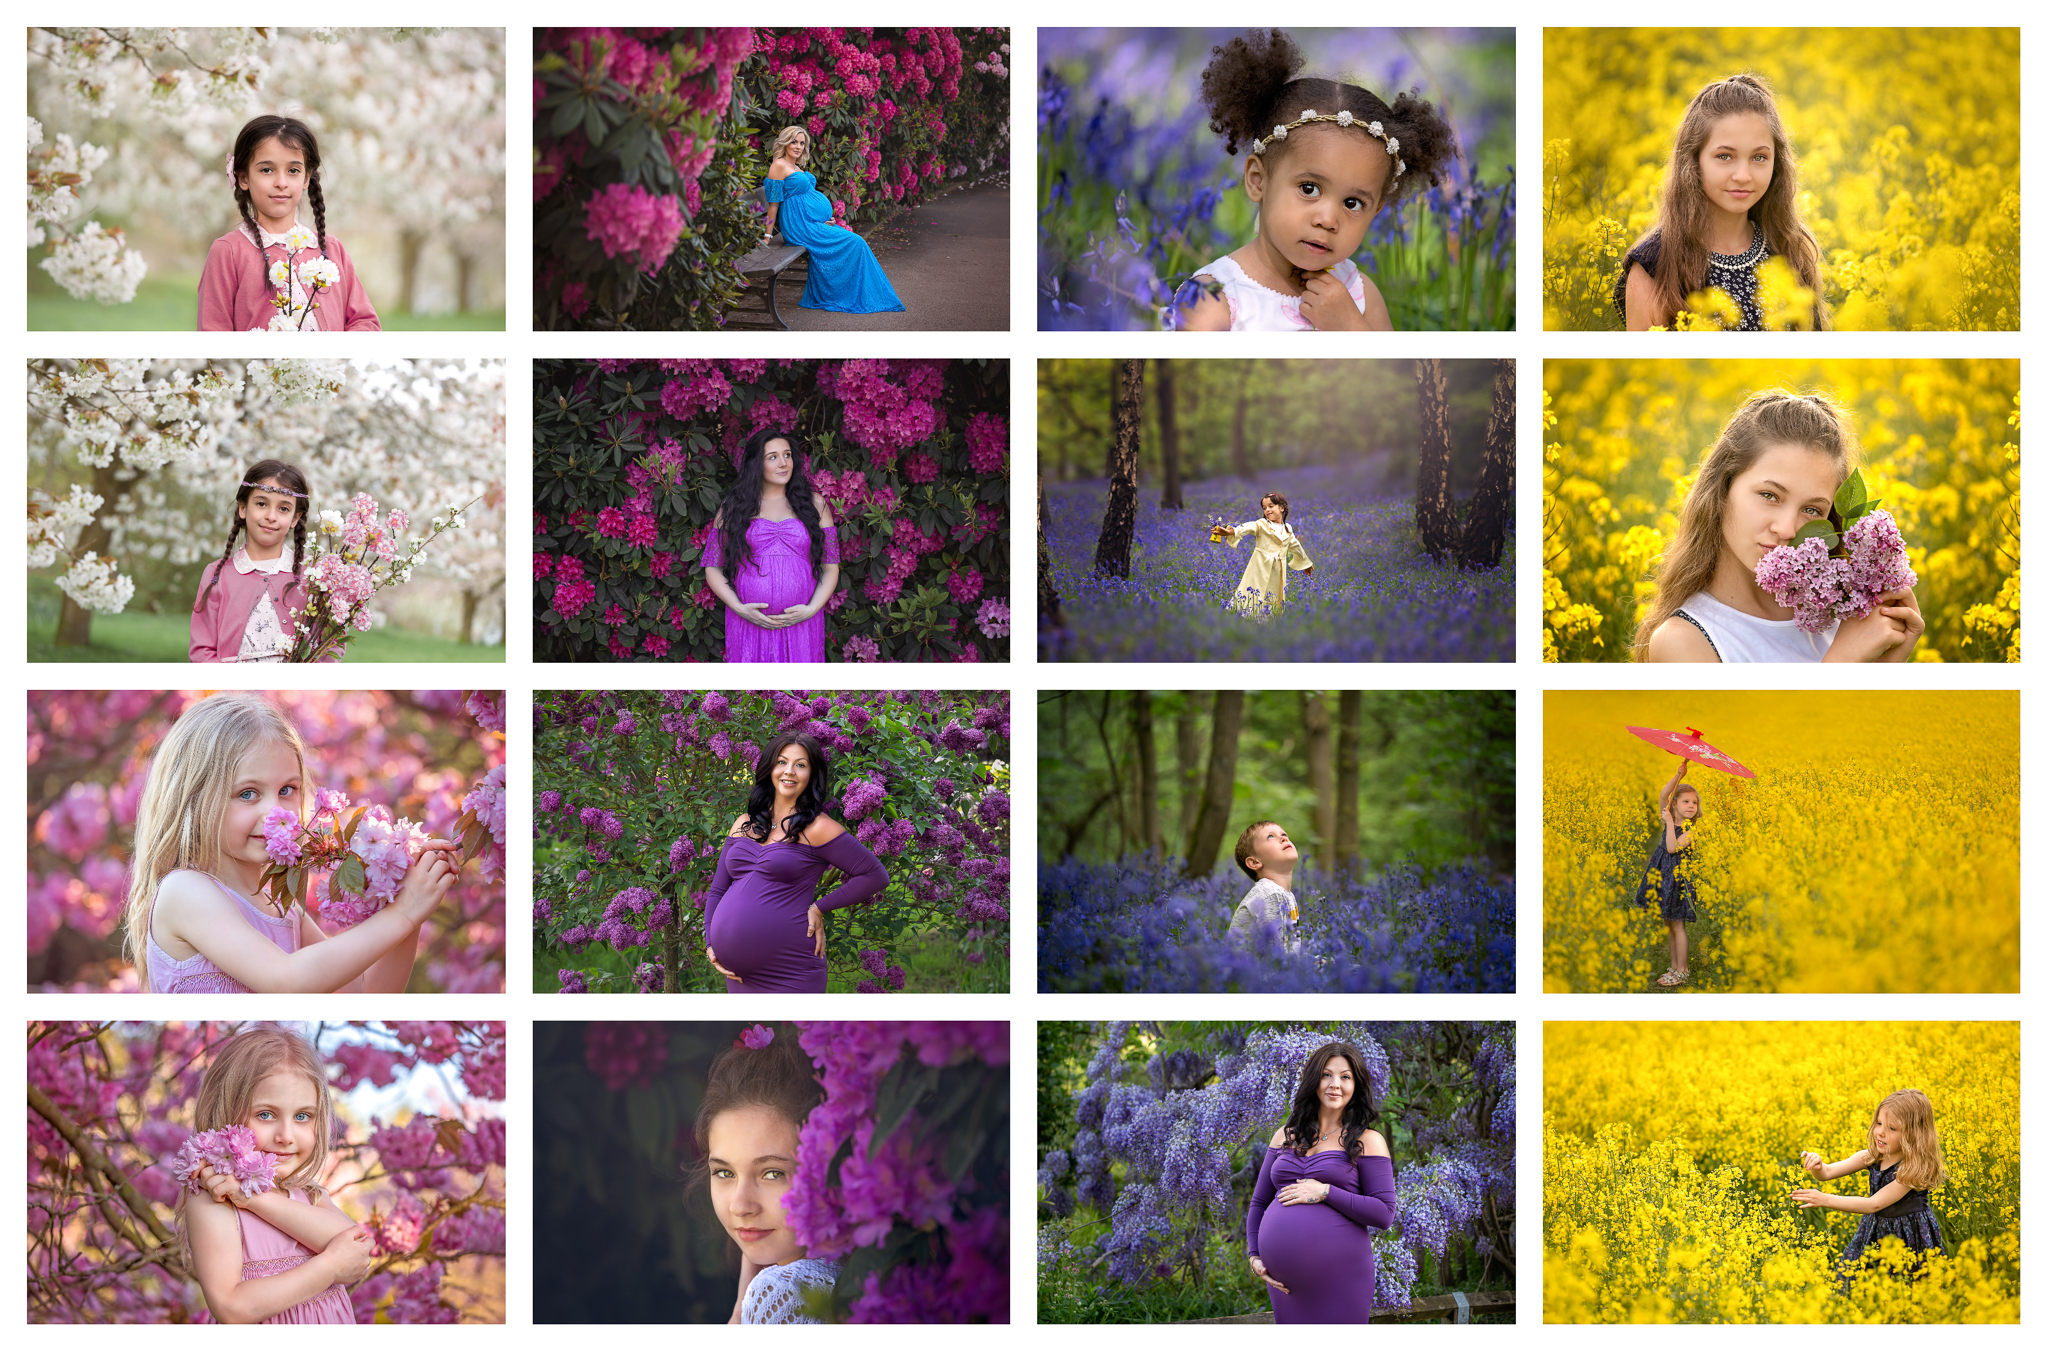 Portrait photography Leeds, maternity, family and child photographer in Leeds, Yorkshire: spring blossom outdoor sessions 2019